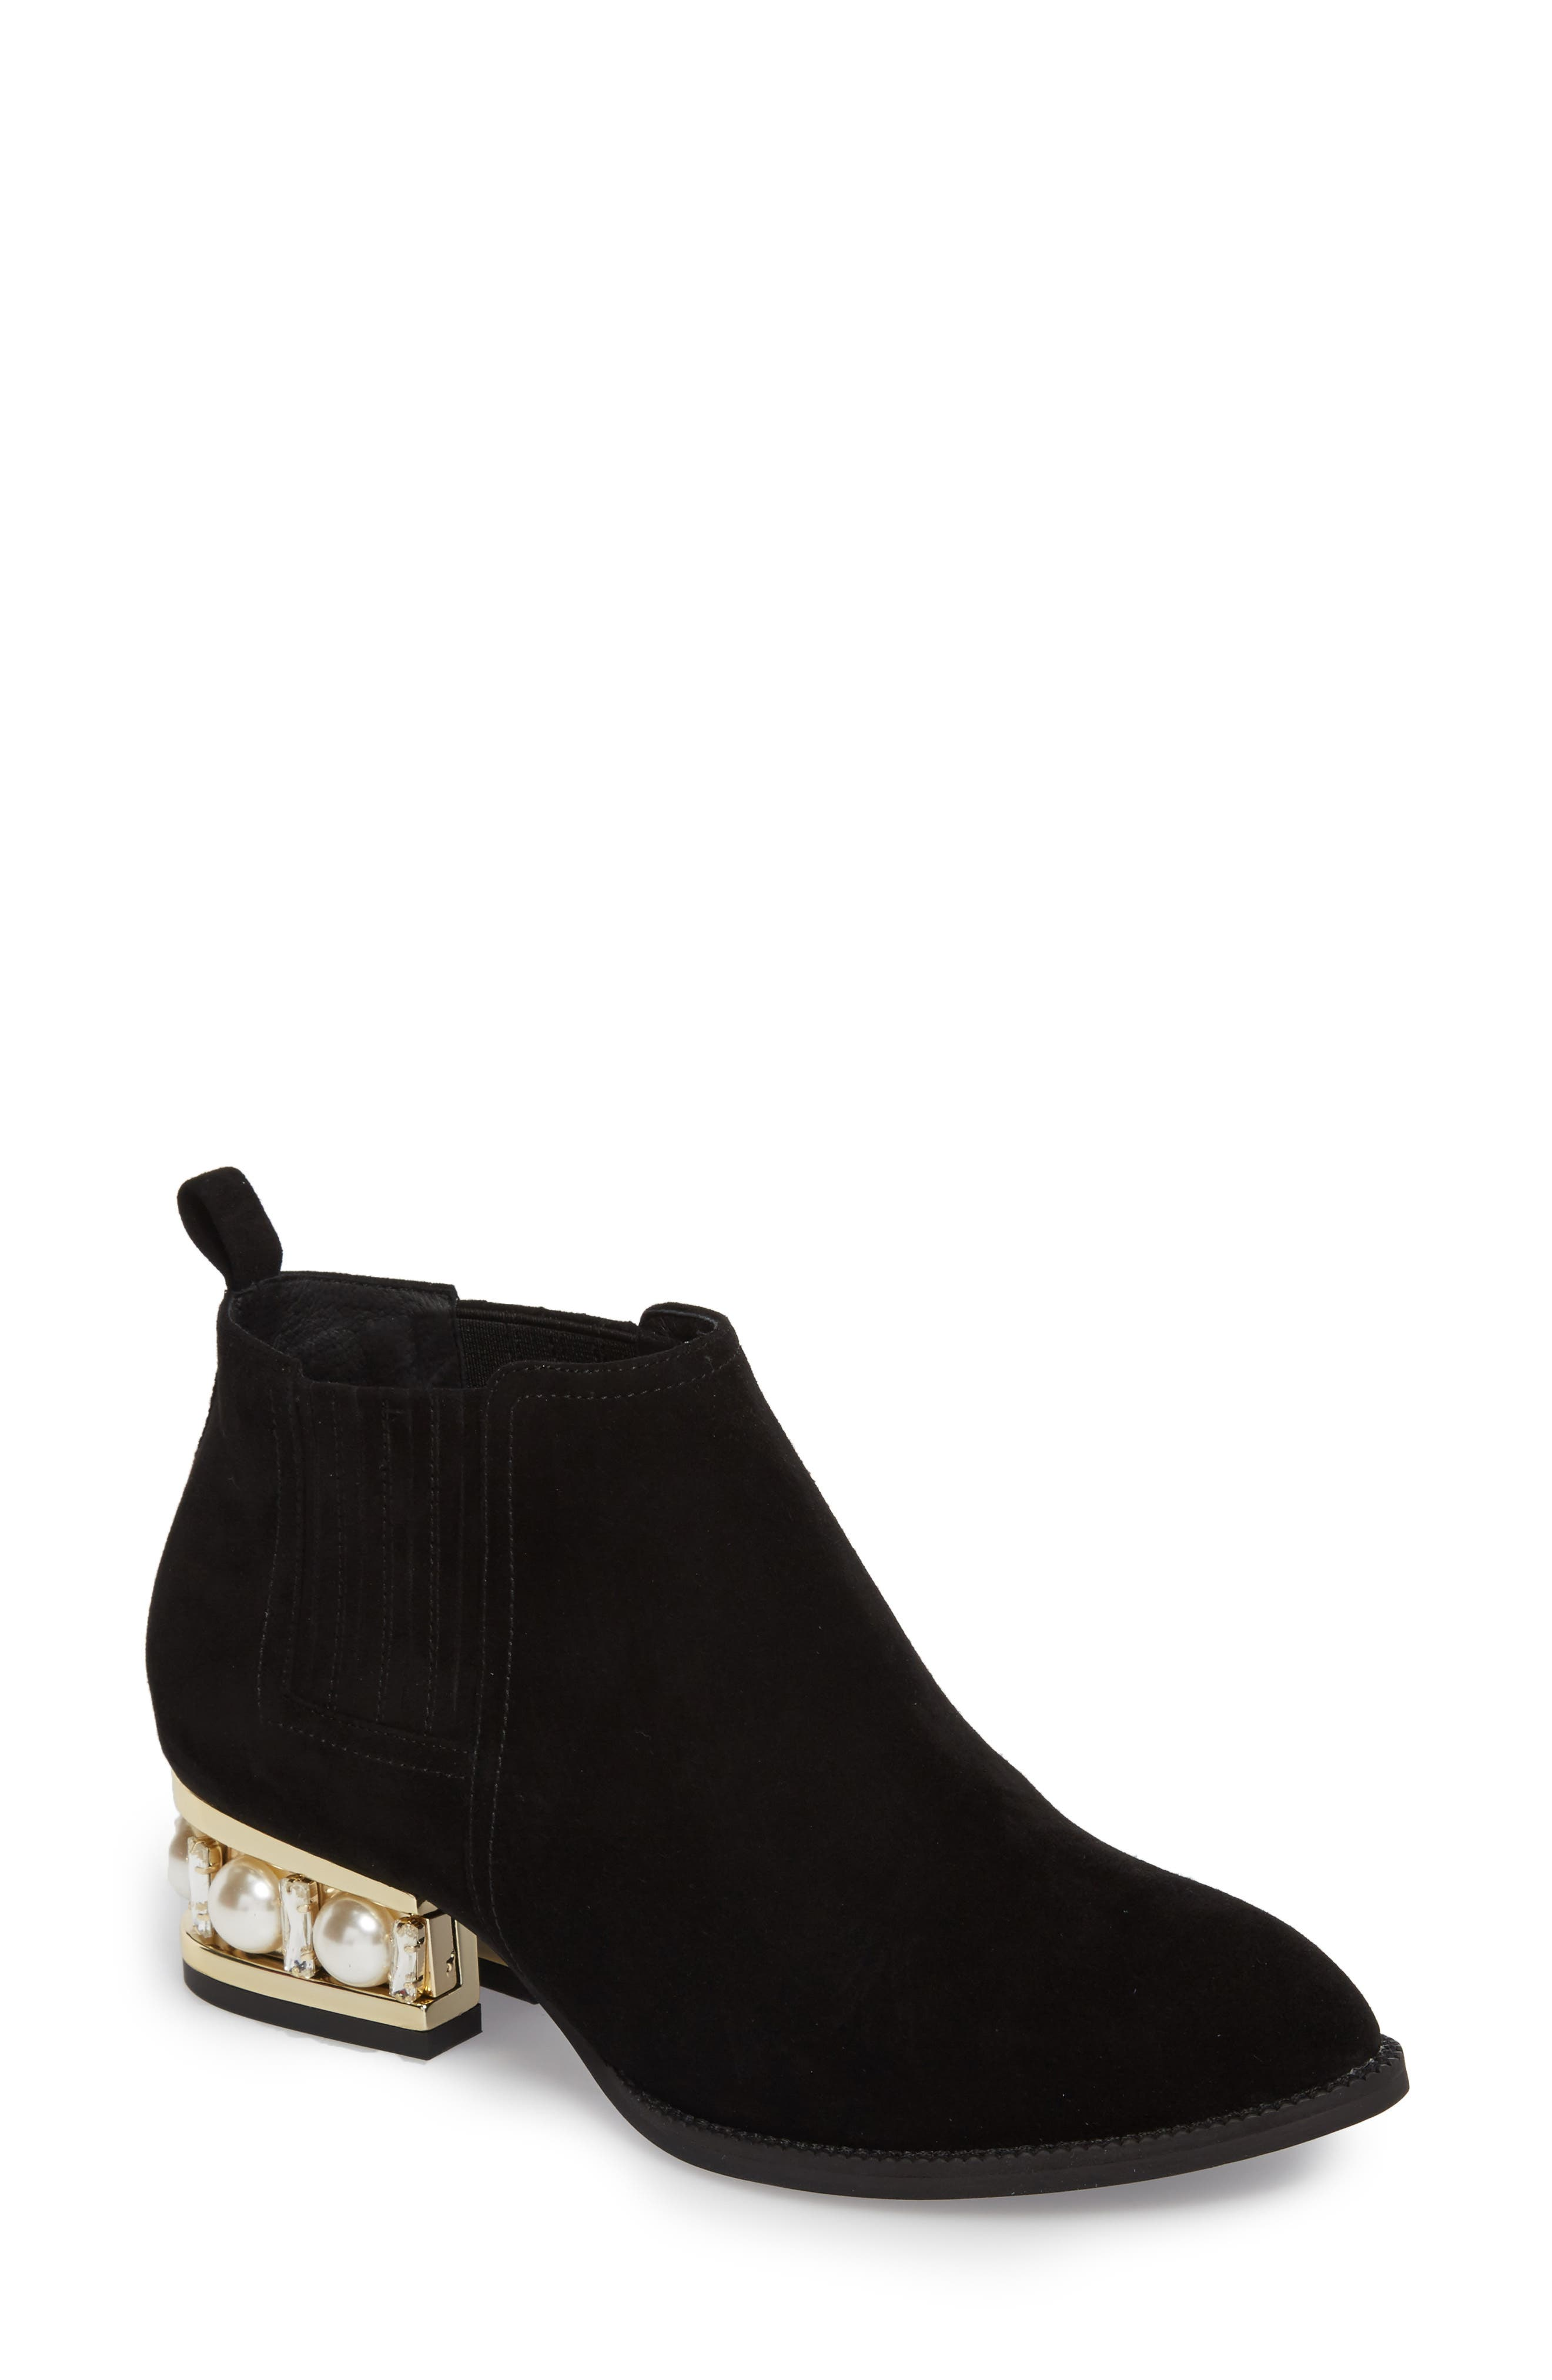 Main Image - Jeffrey Campbell Metcalf Embellished Bootie (Women)